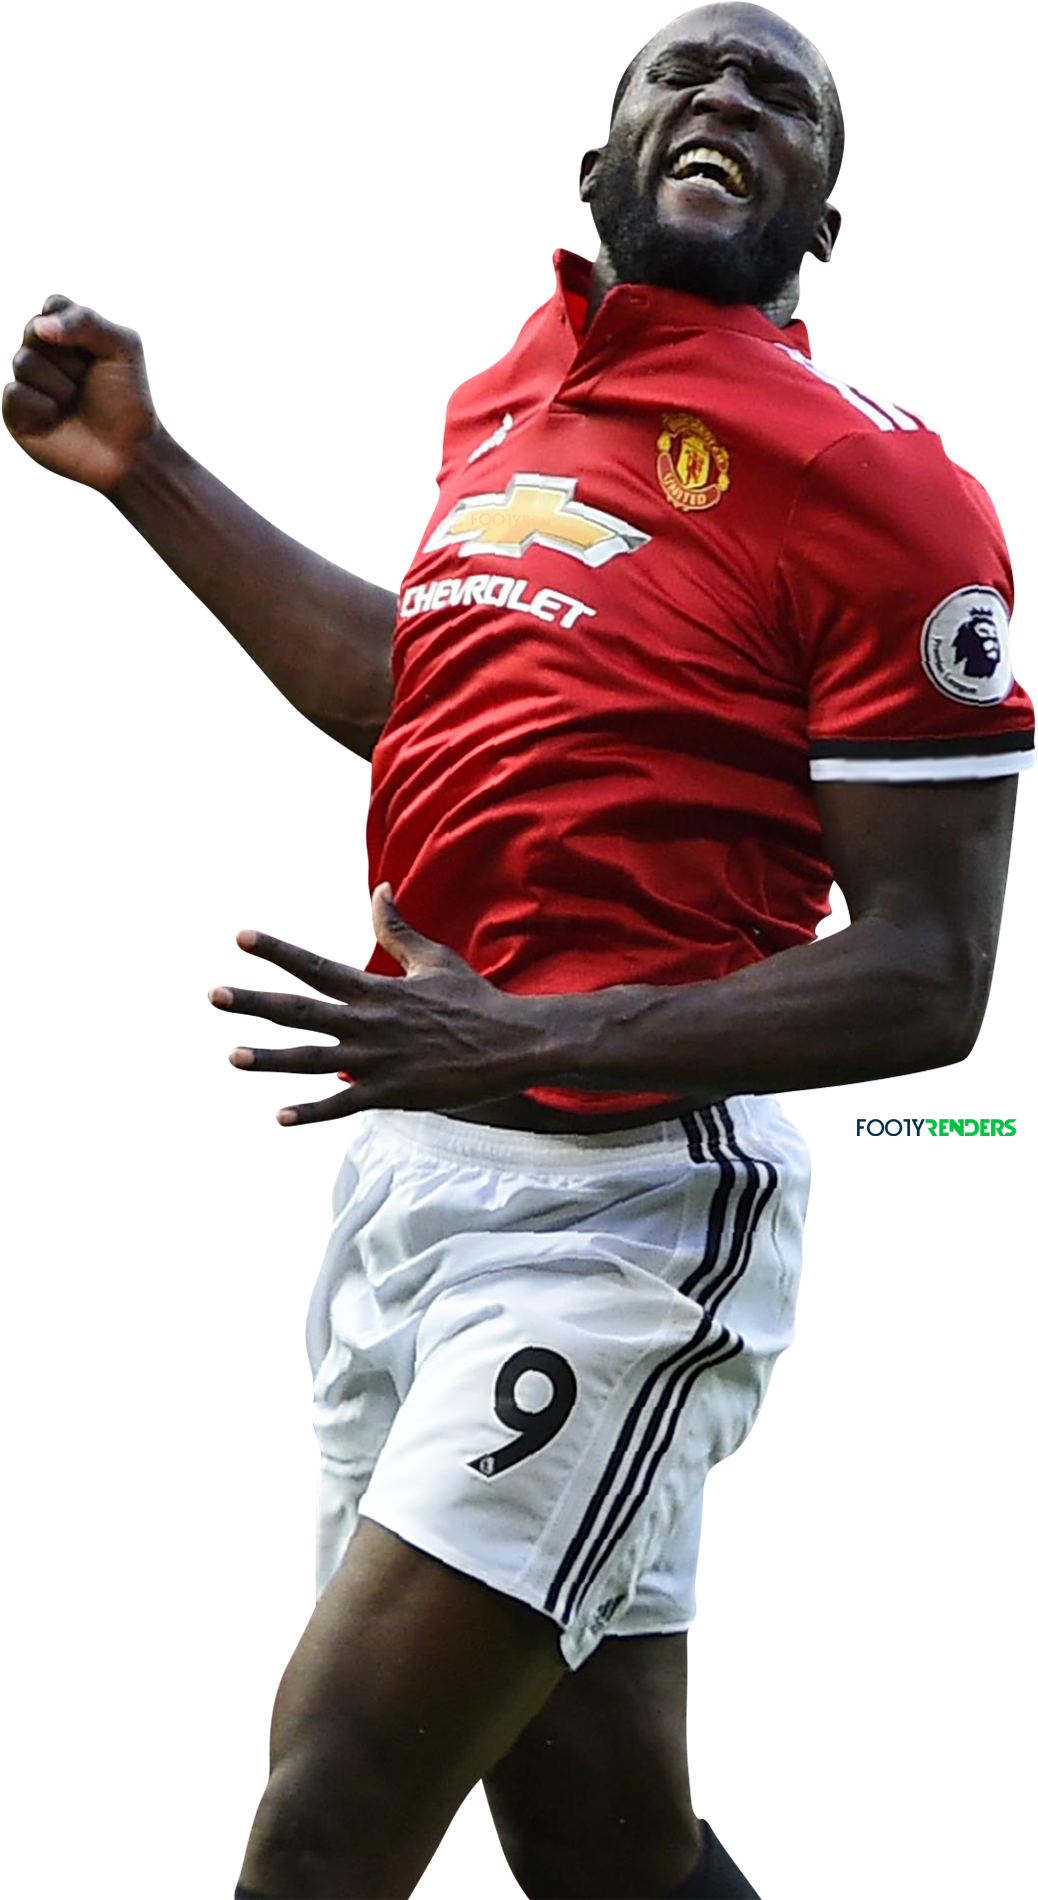 Romelu Lukaku Render Manchester United View And Download Football Renders In Png Now Fo Manchester United Team Romelu Lukaku Manchester United Football Club